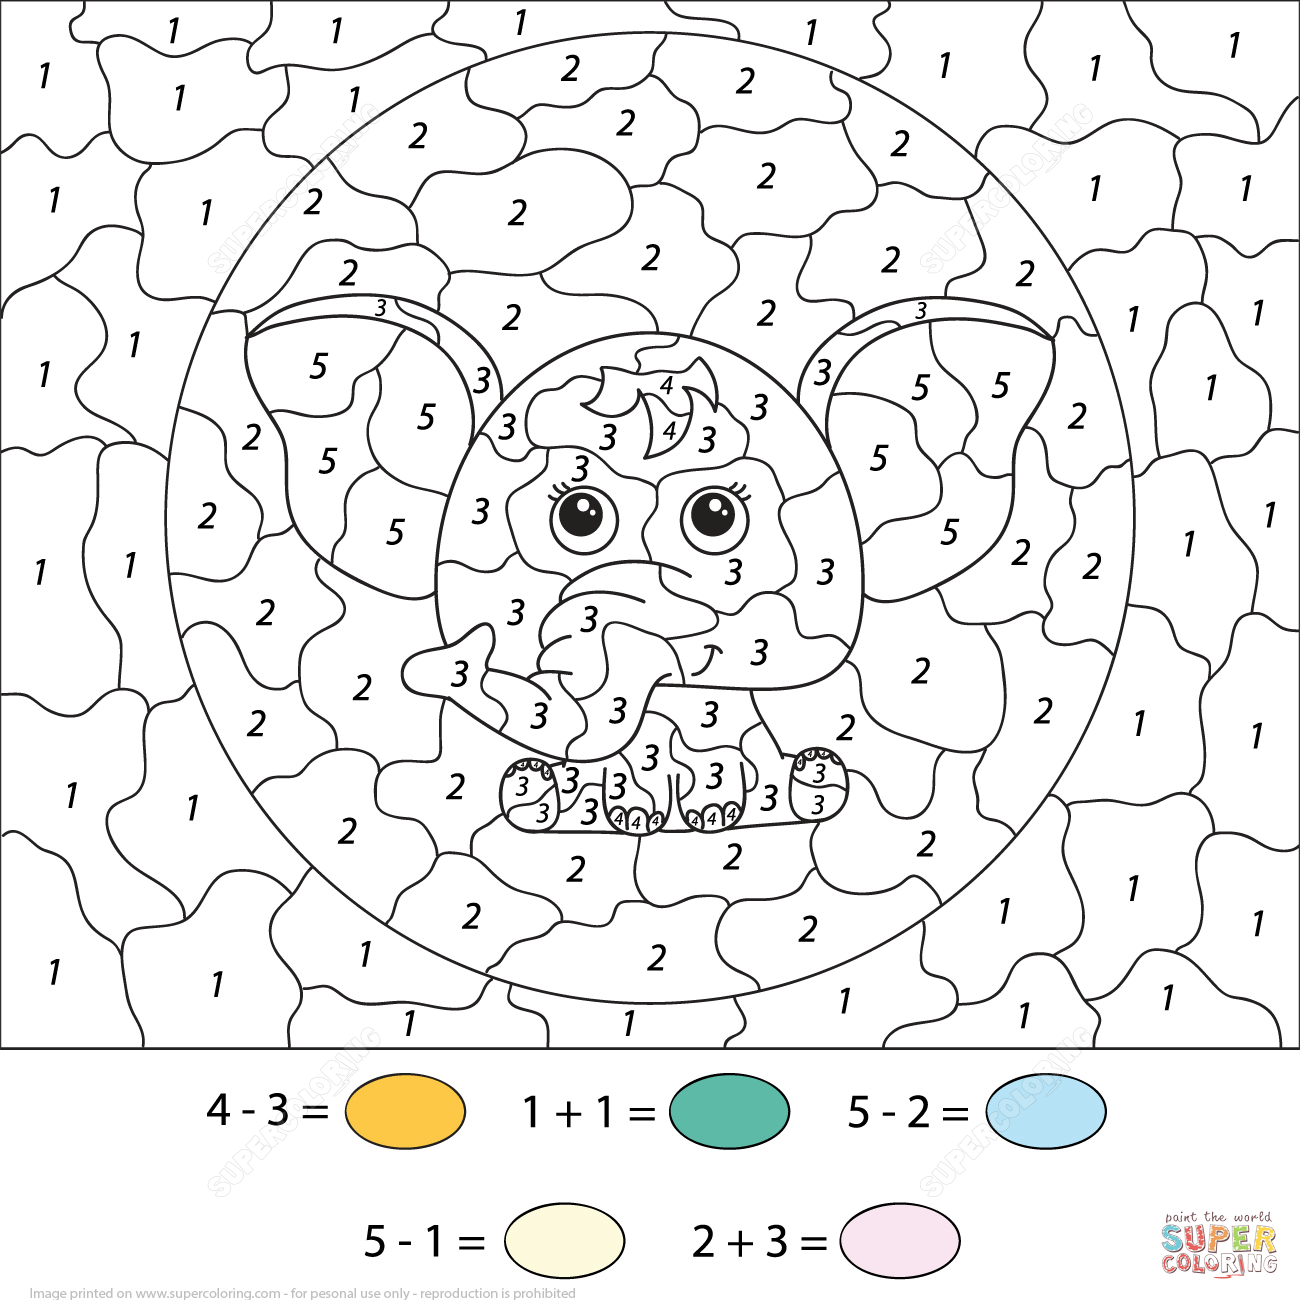 elephants color by number coloring page free printable coloring